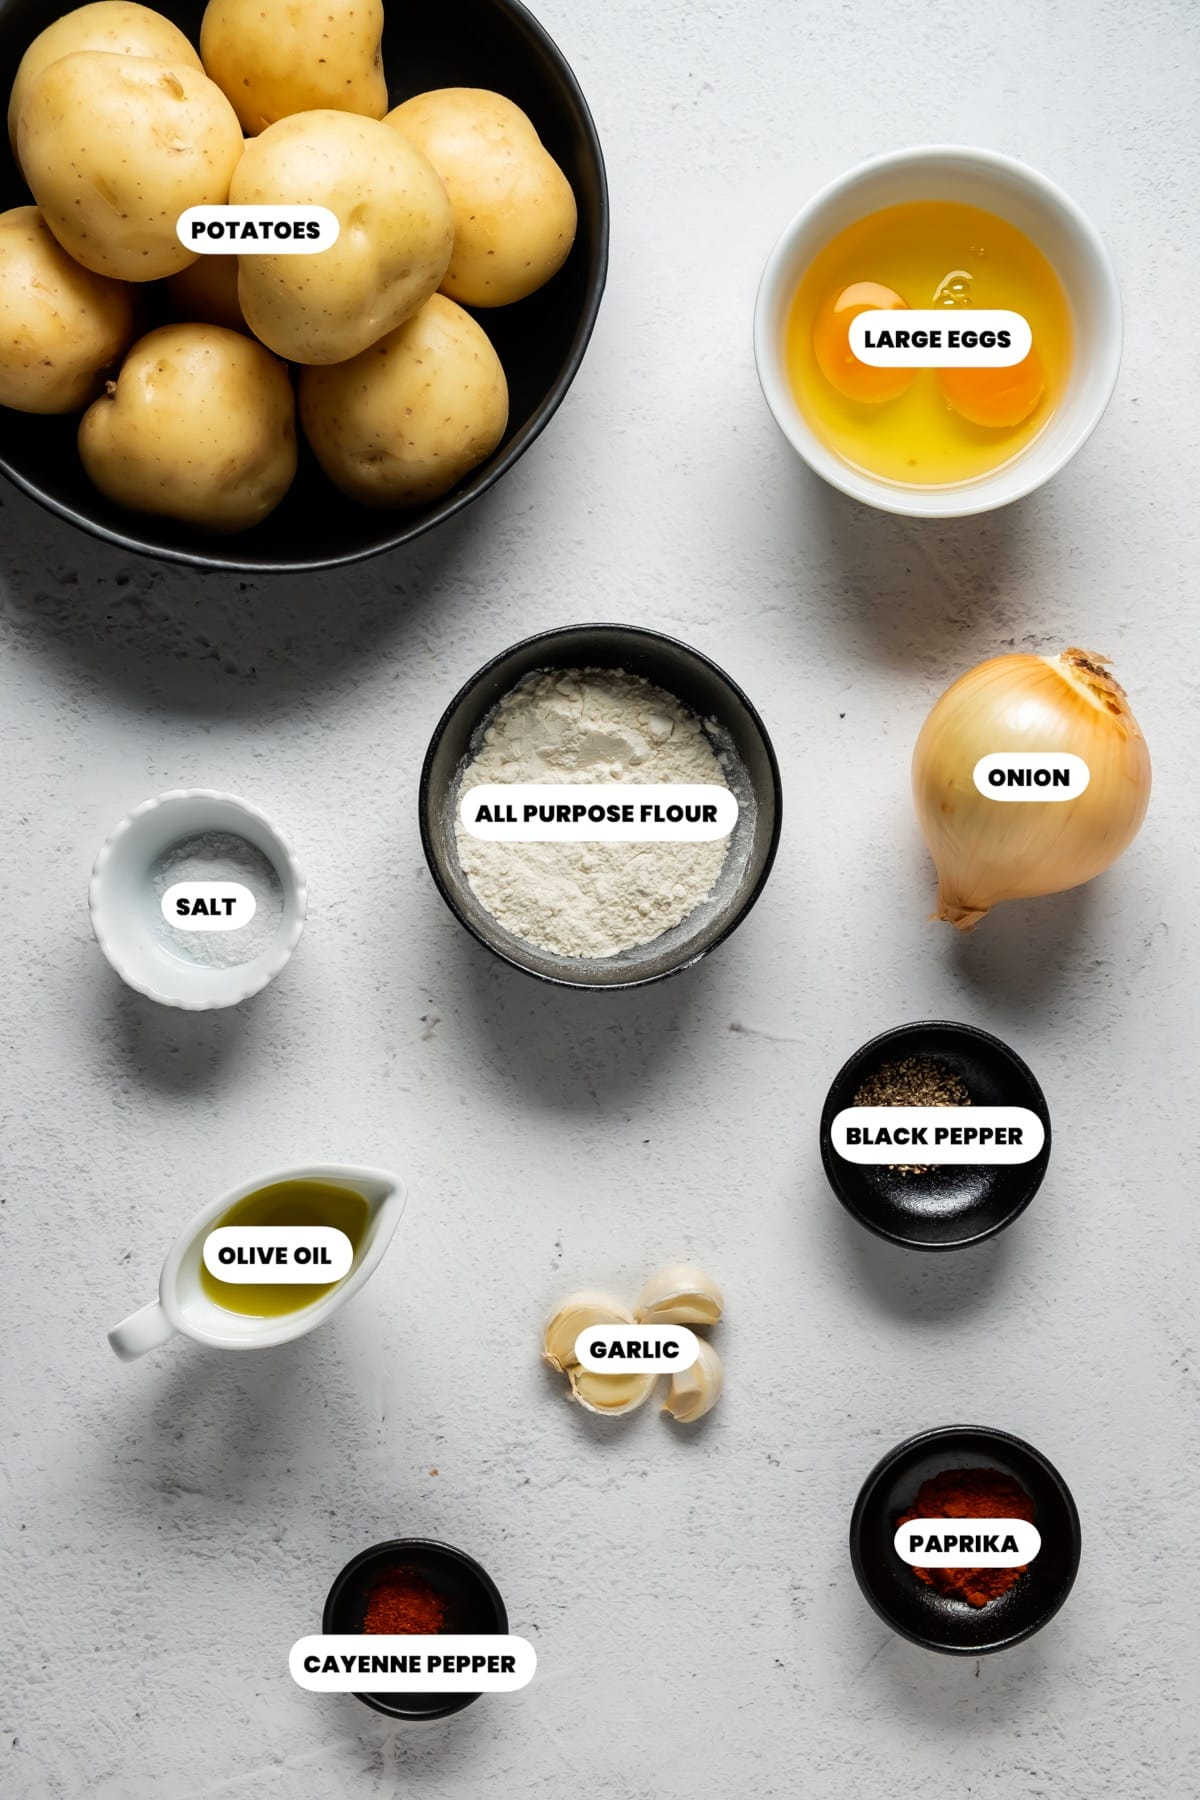 Photo of the ingredients needed to make potato fritters.